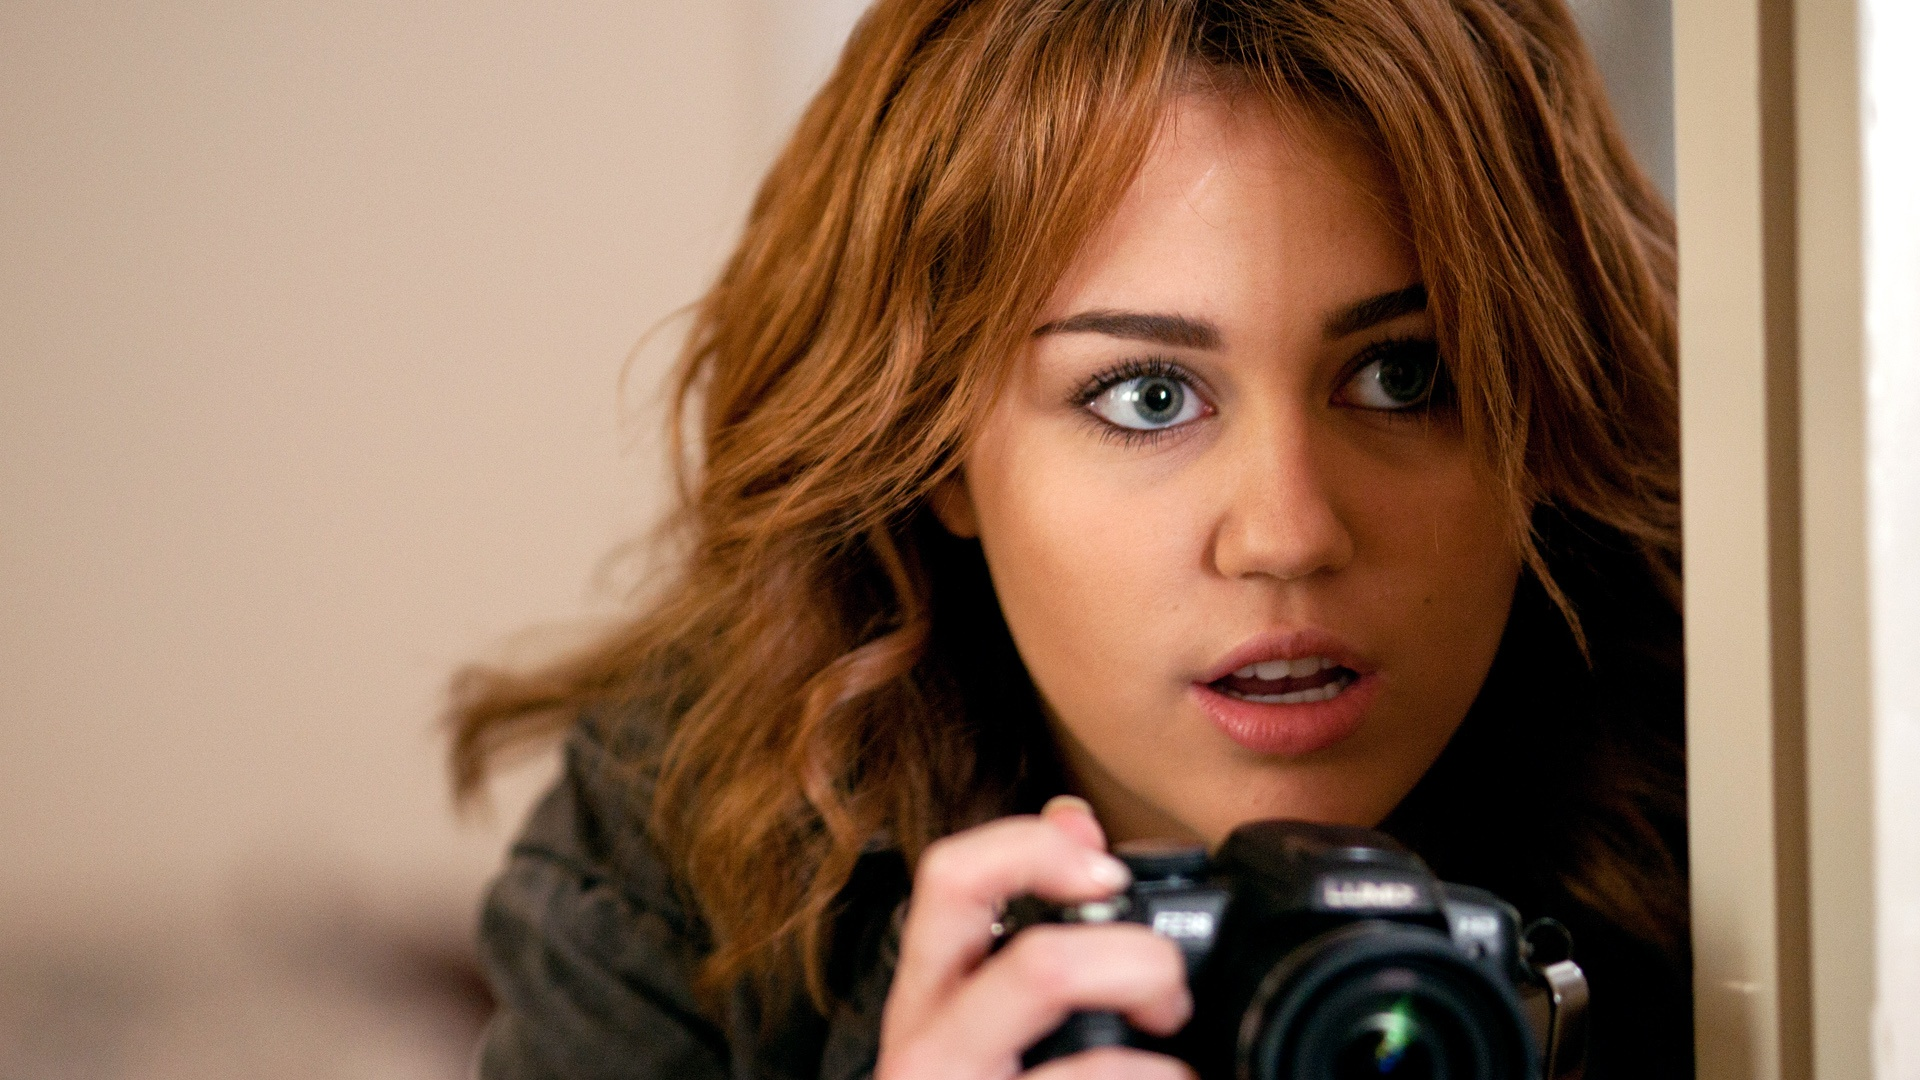 miley cyrus pictures hd A42